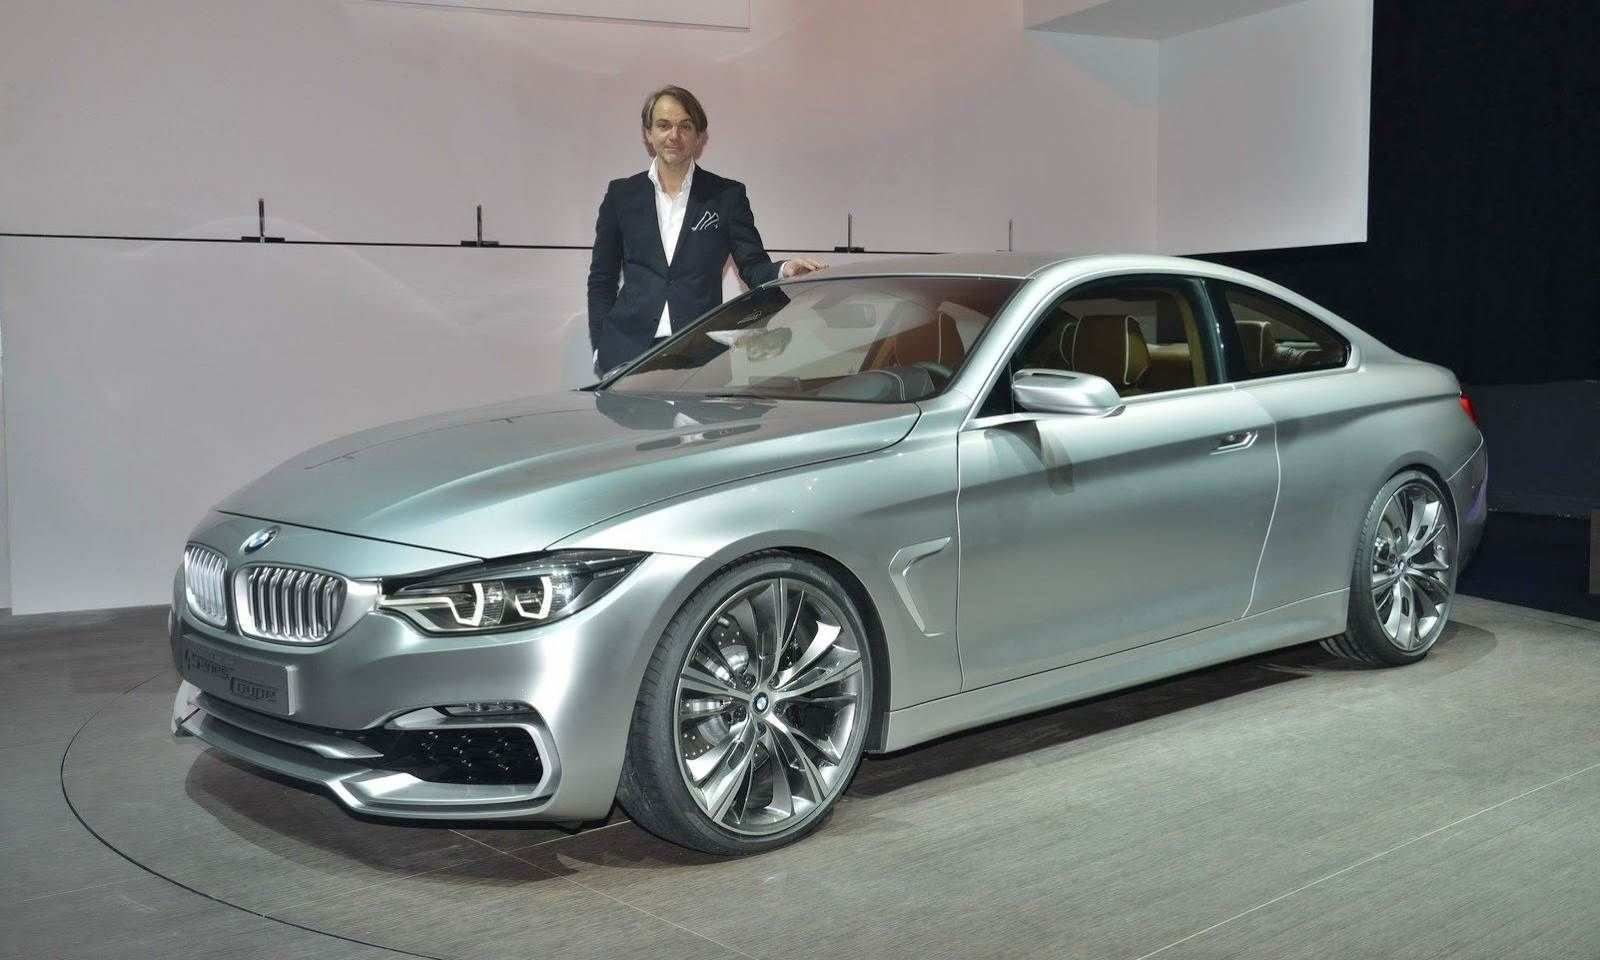 46 All New 2019 Bmw 5 Series Release Date New Review